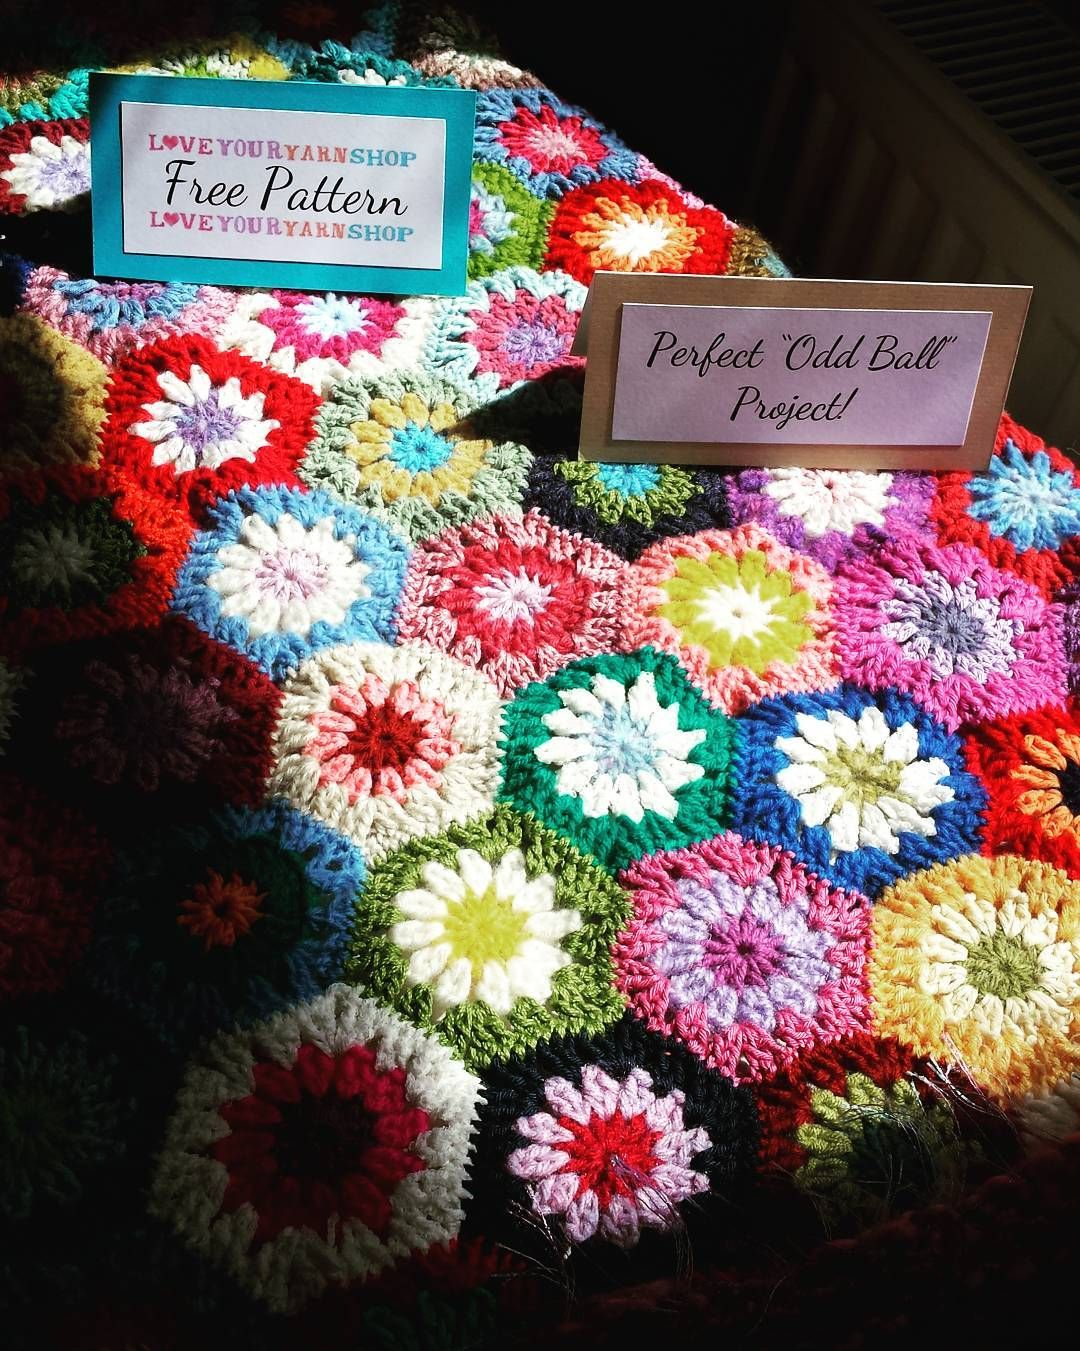 Our Yarn Shop Day with @letsknitmag and Julia's House tomorrow is full of colourful & inspirational ideas like this Crochet Hexagon blanket in pride of place by the window and it just looks amazing as the Sturminster Newton sun shines down on it!  #yarnshopday #colourful #inspiration #crochet #crochethexagon #colourfulyarn #blanket #prideofplace #sturminsternewton #sunshine #freepattern #oddball #project #YSDathansons by hansonsfabricsandcrafts